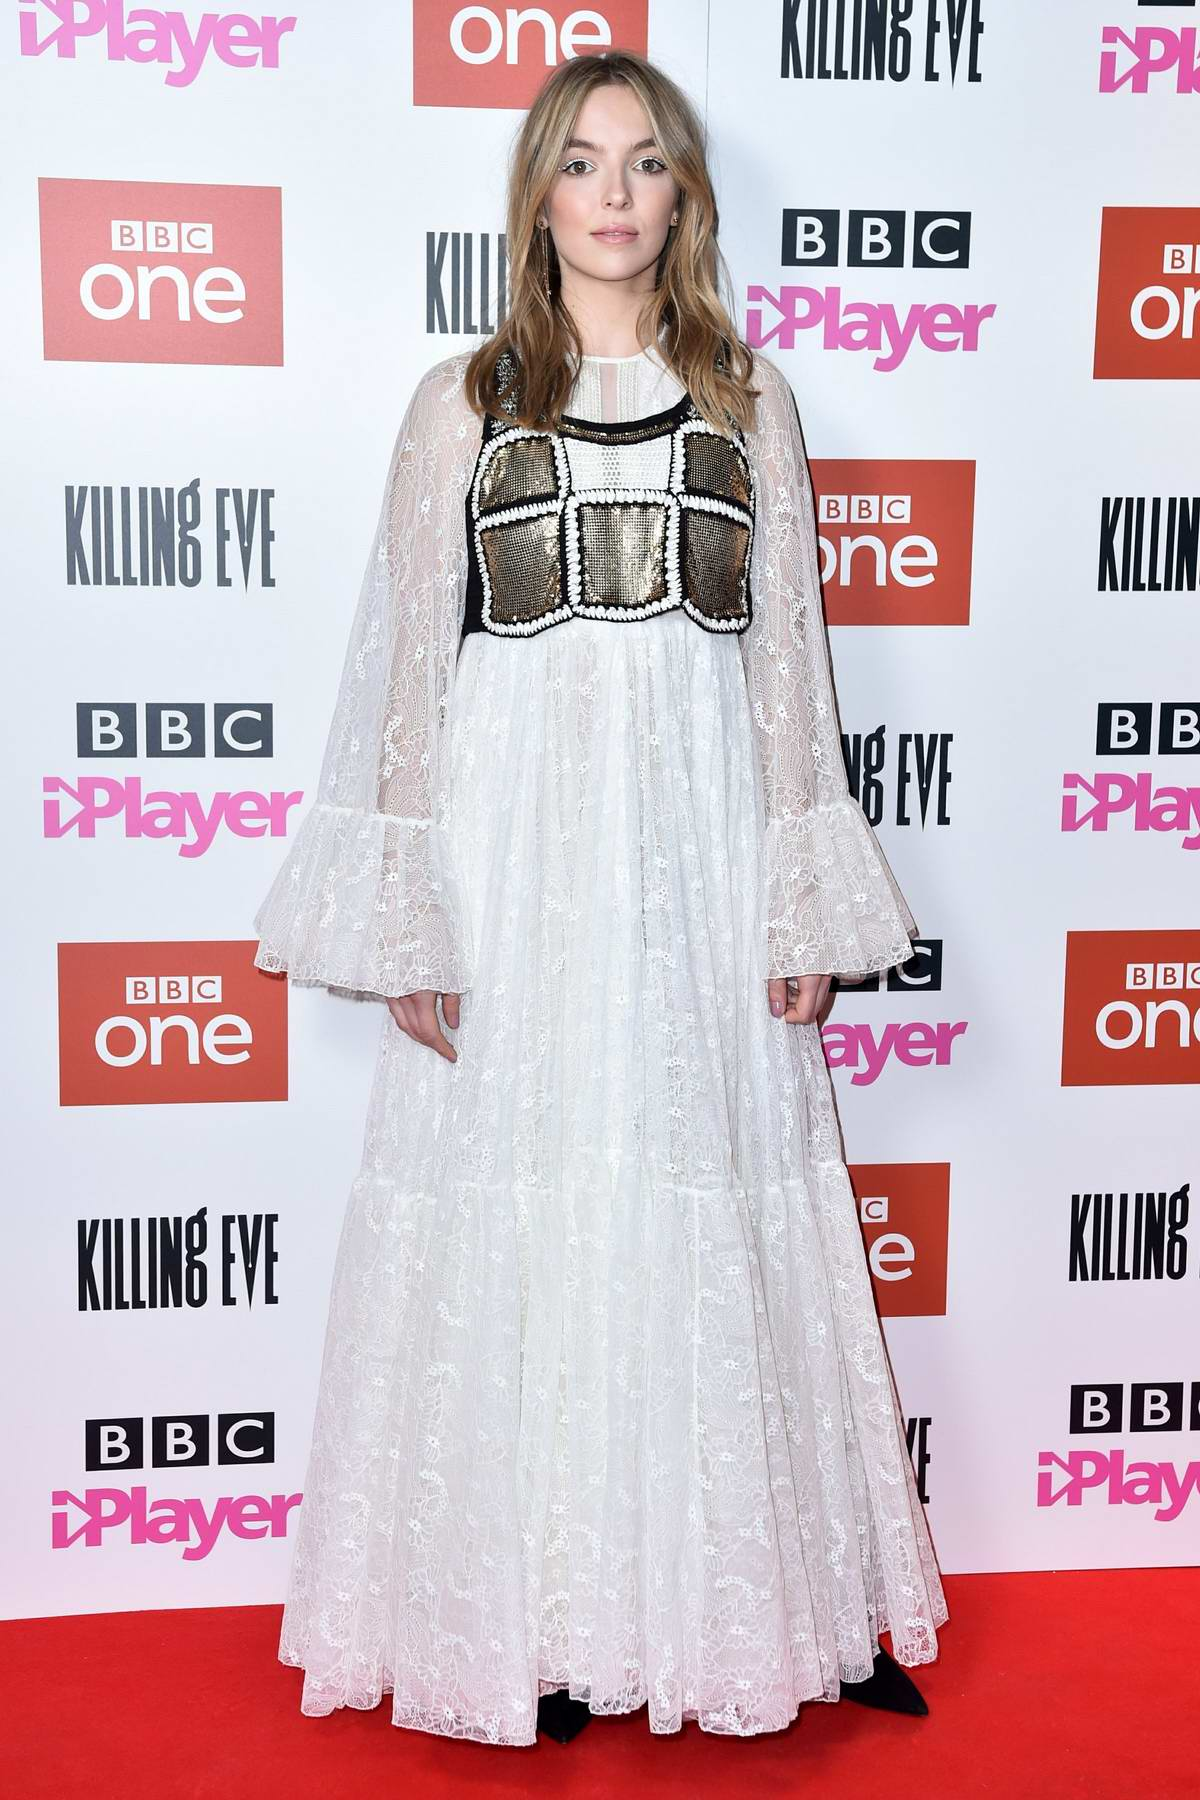 Jodie Comer attends the 'Killing Eve' Series Two premiere at Curzon Soho in London, UK